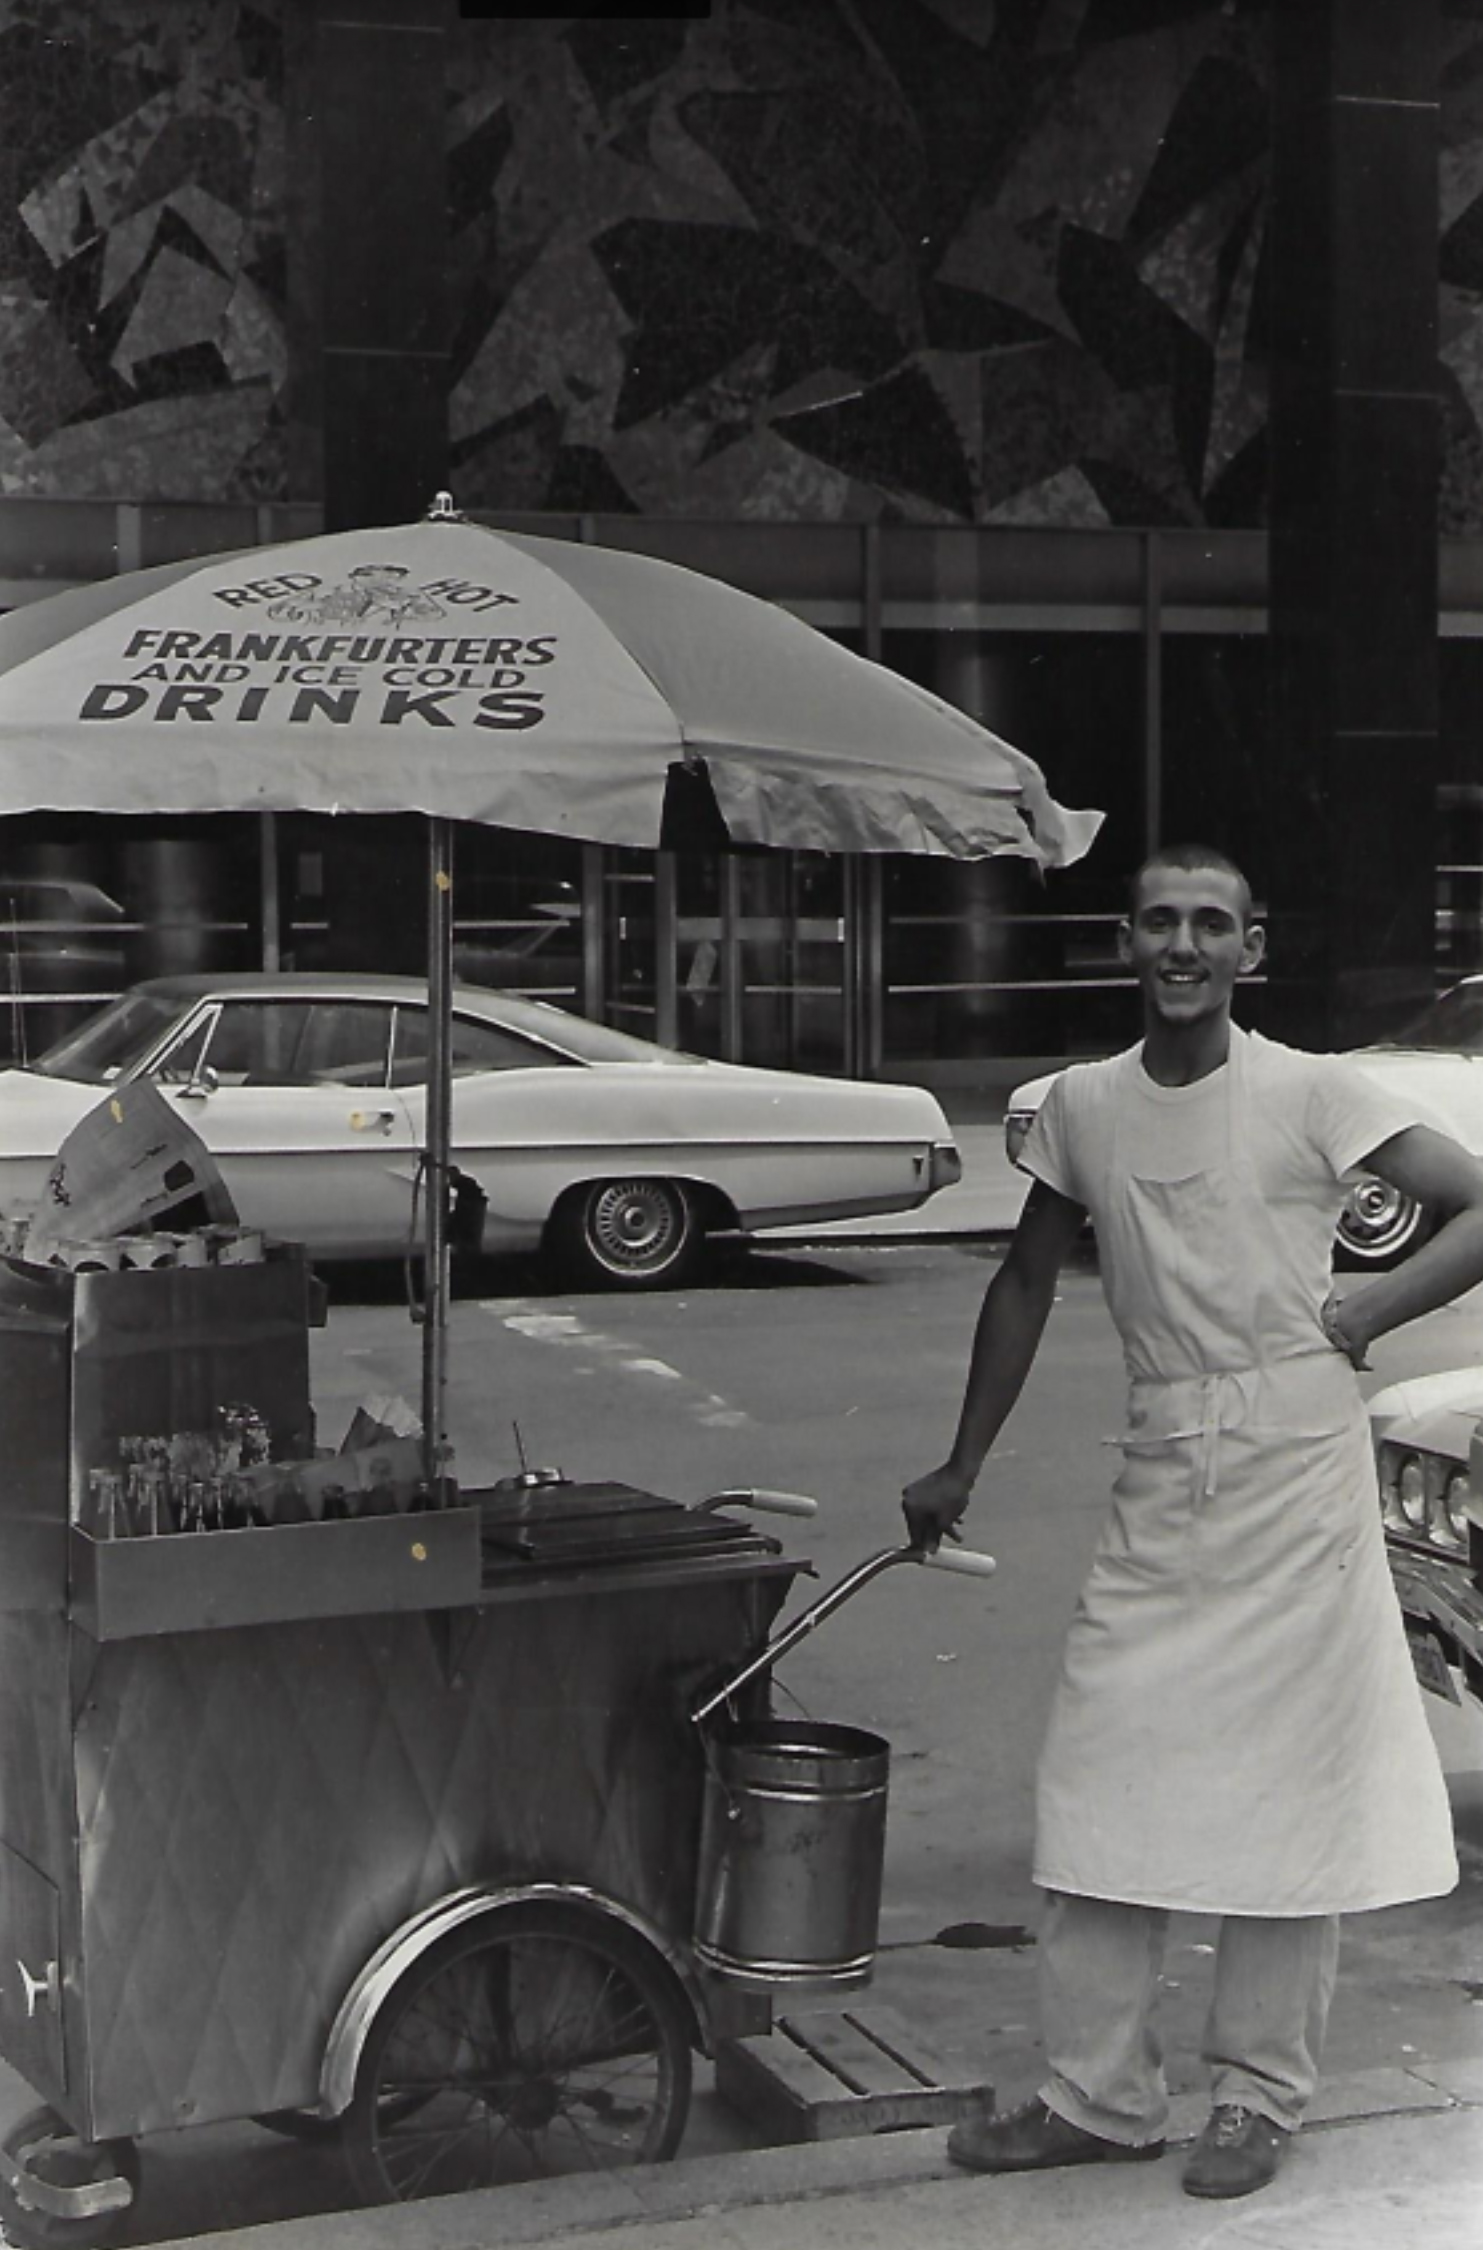 My father, Thomas Laskaris, selling hot dogs at age 19 (1973) in the financial district of Manhattan. A customer took the photo of him and, as promised, sent it to him in the mail.